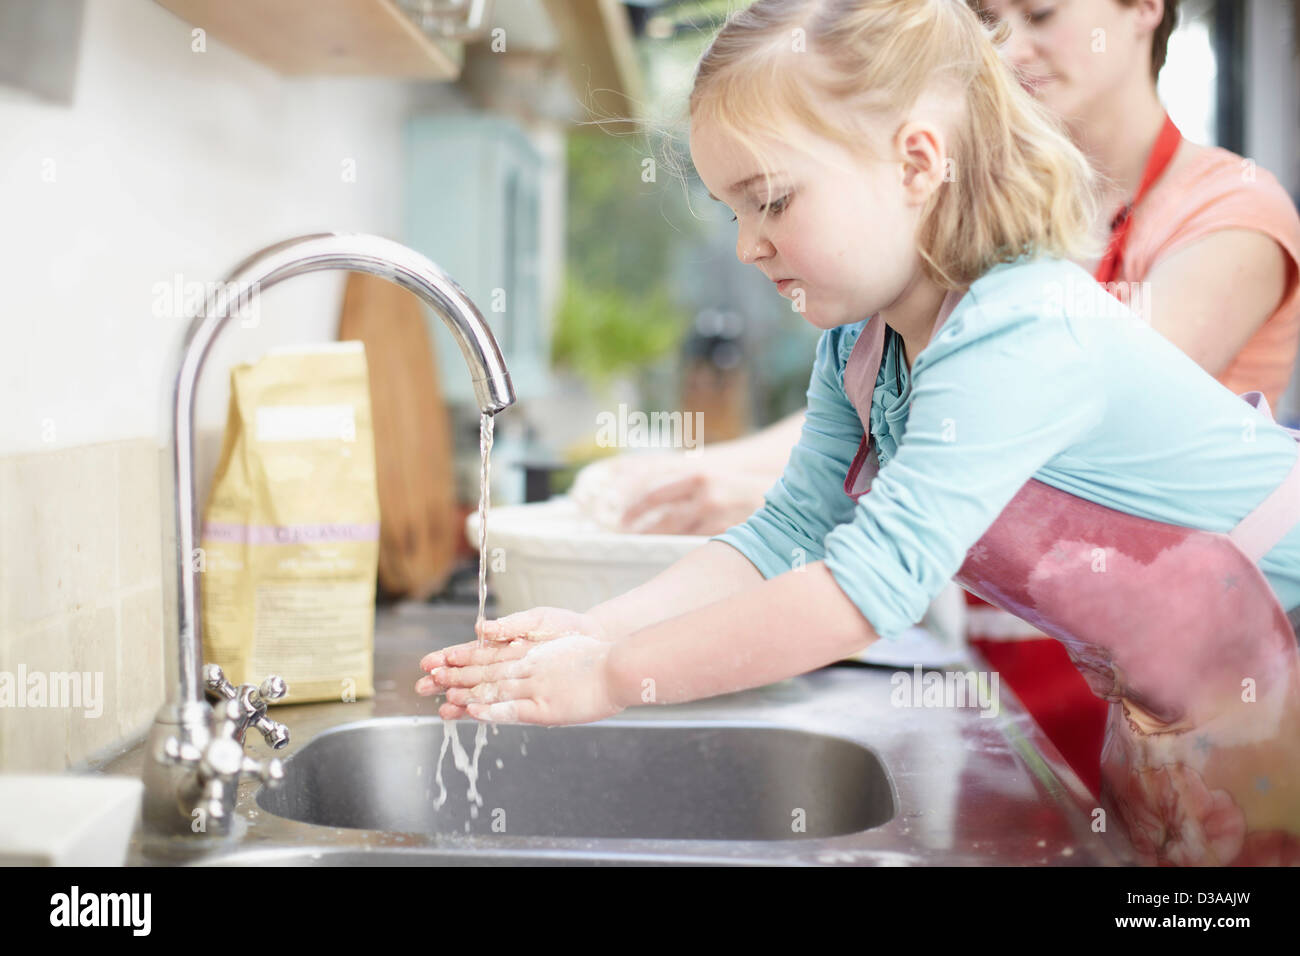 Girl washing her hands in kitchen - Stock Image